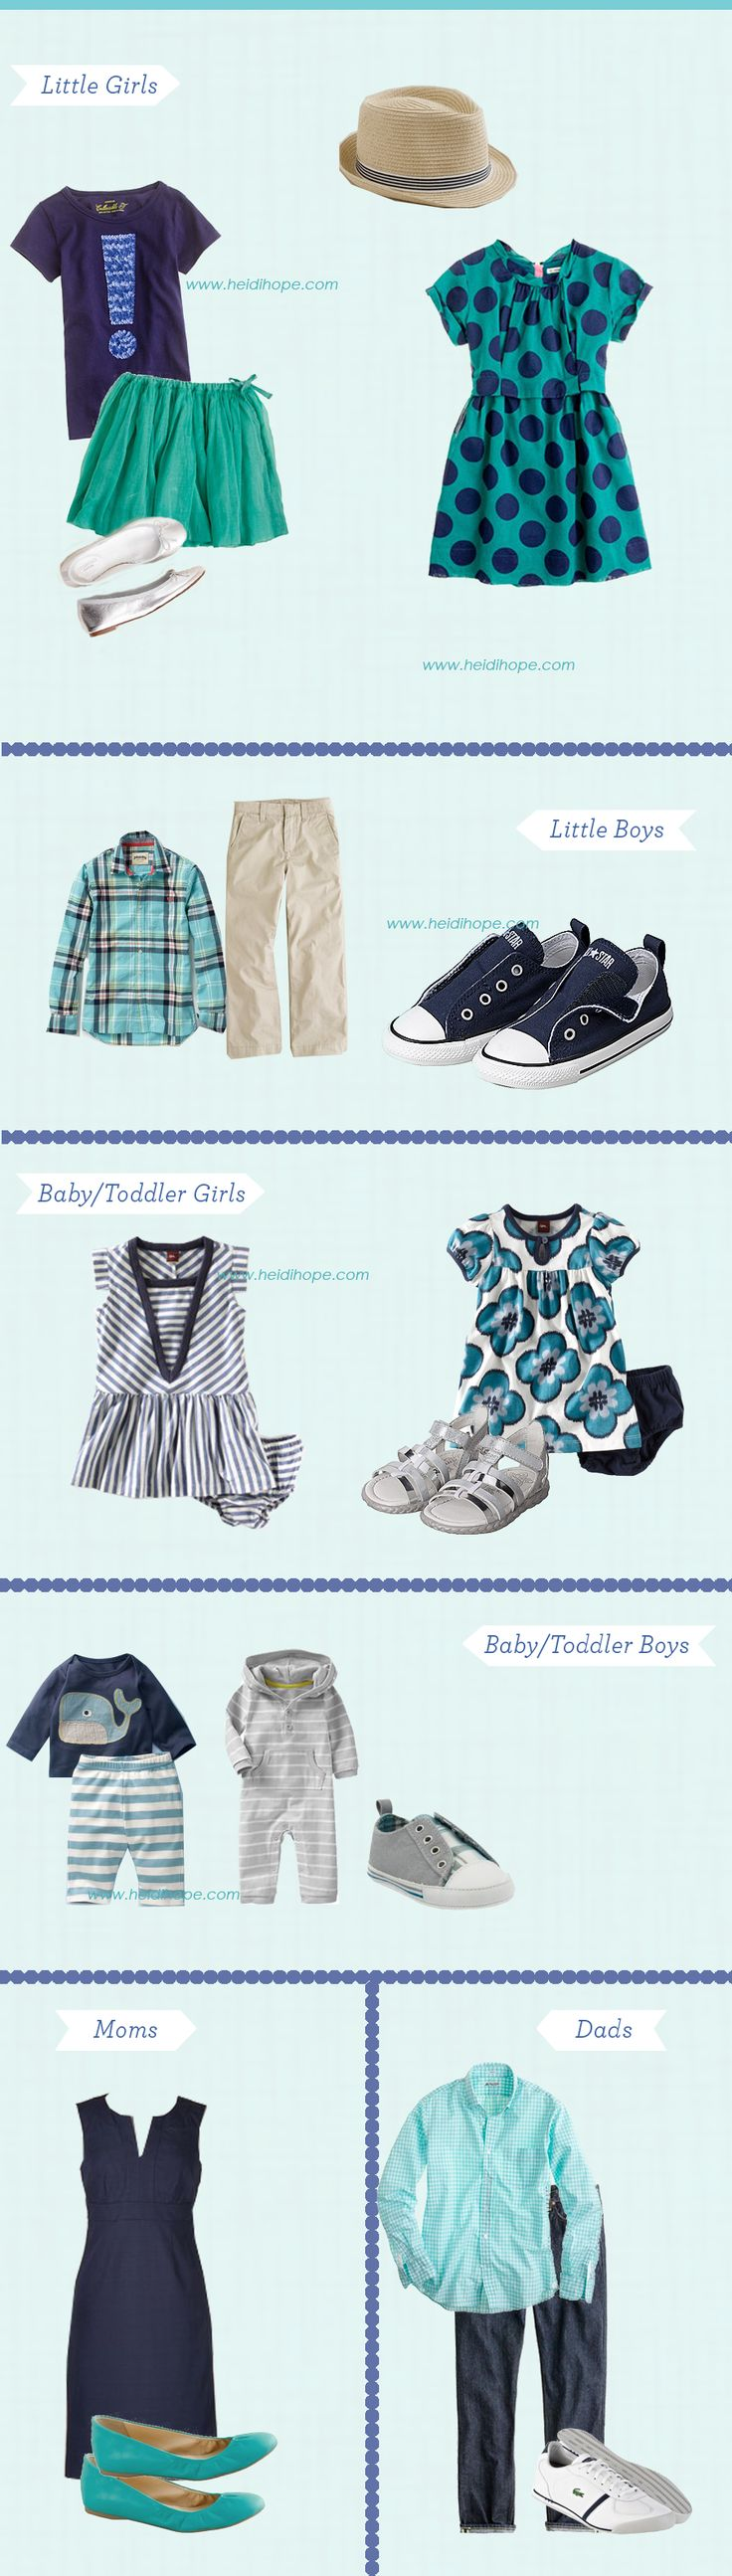 Spring Photo Shoot Clothing Inspiration!  A combination of blues, greens and neutrals!